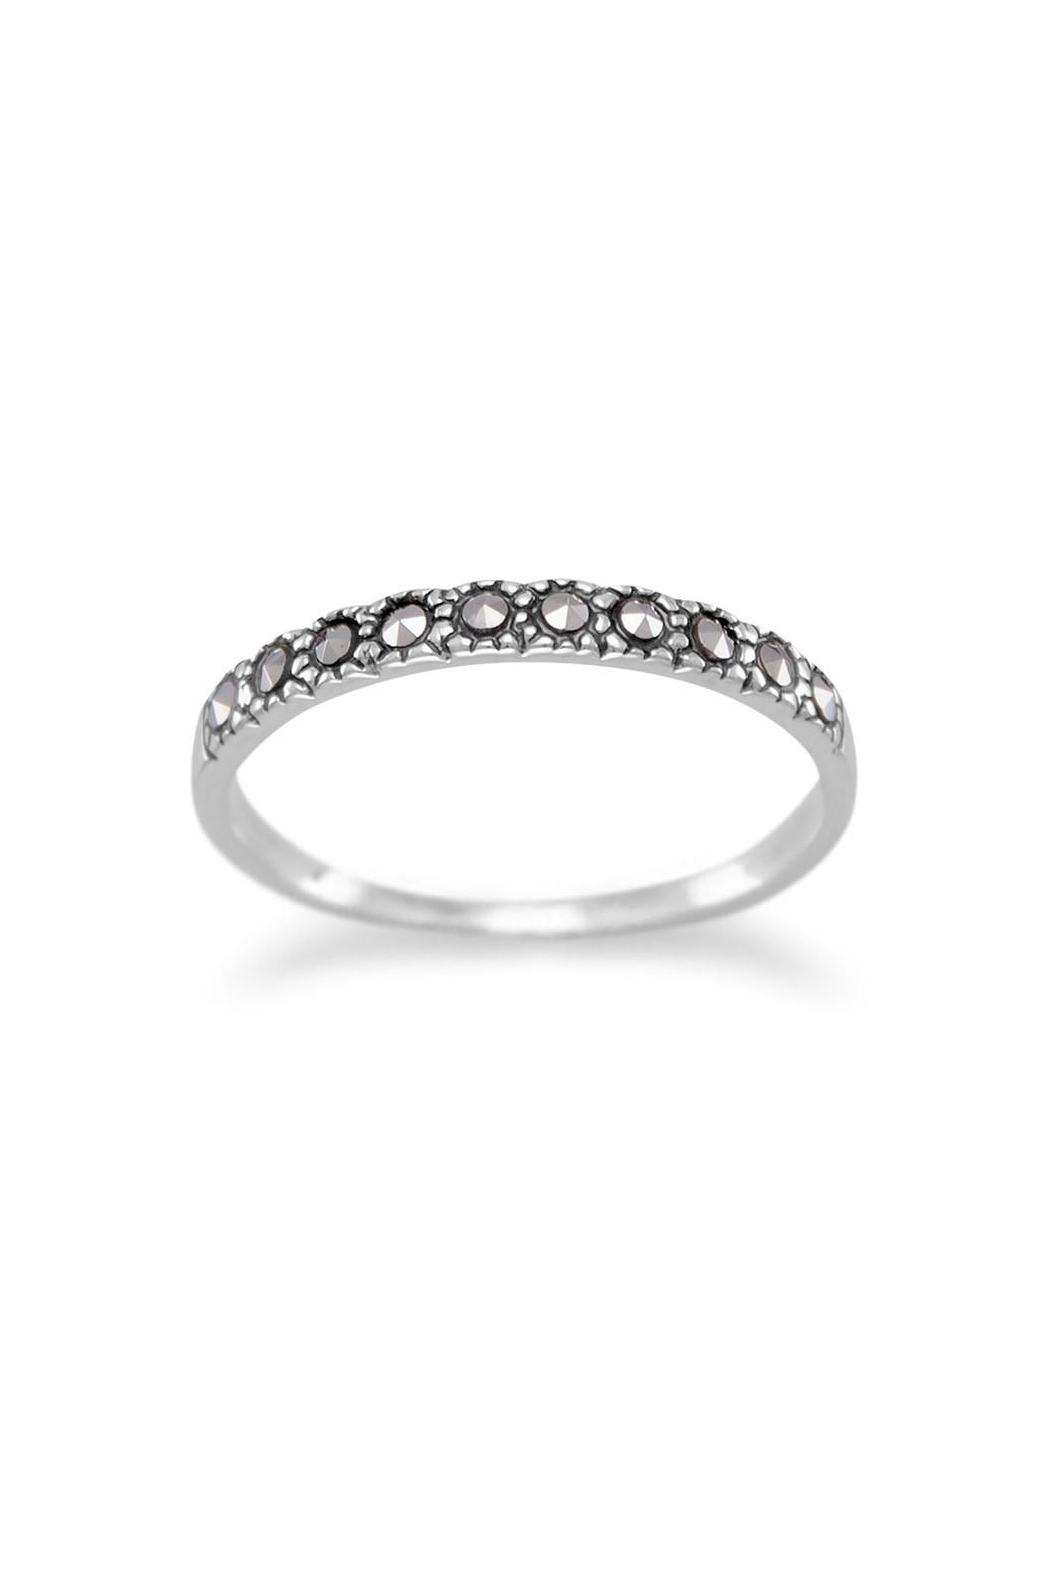 Wild Lilies Jewelry  Thin Marcasite Band - Main Image